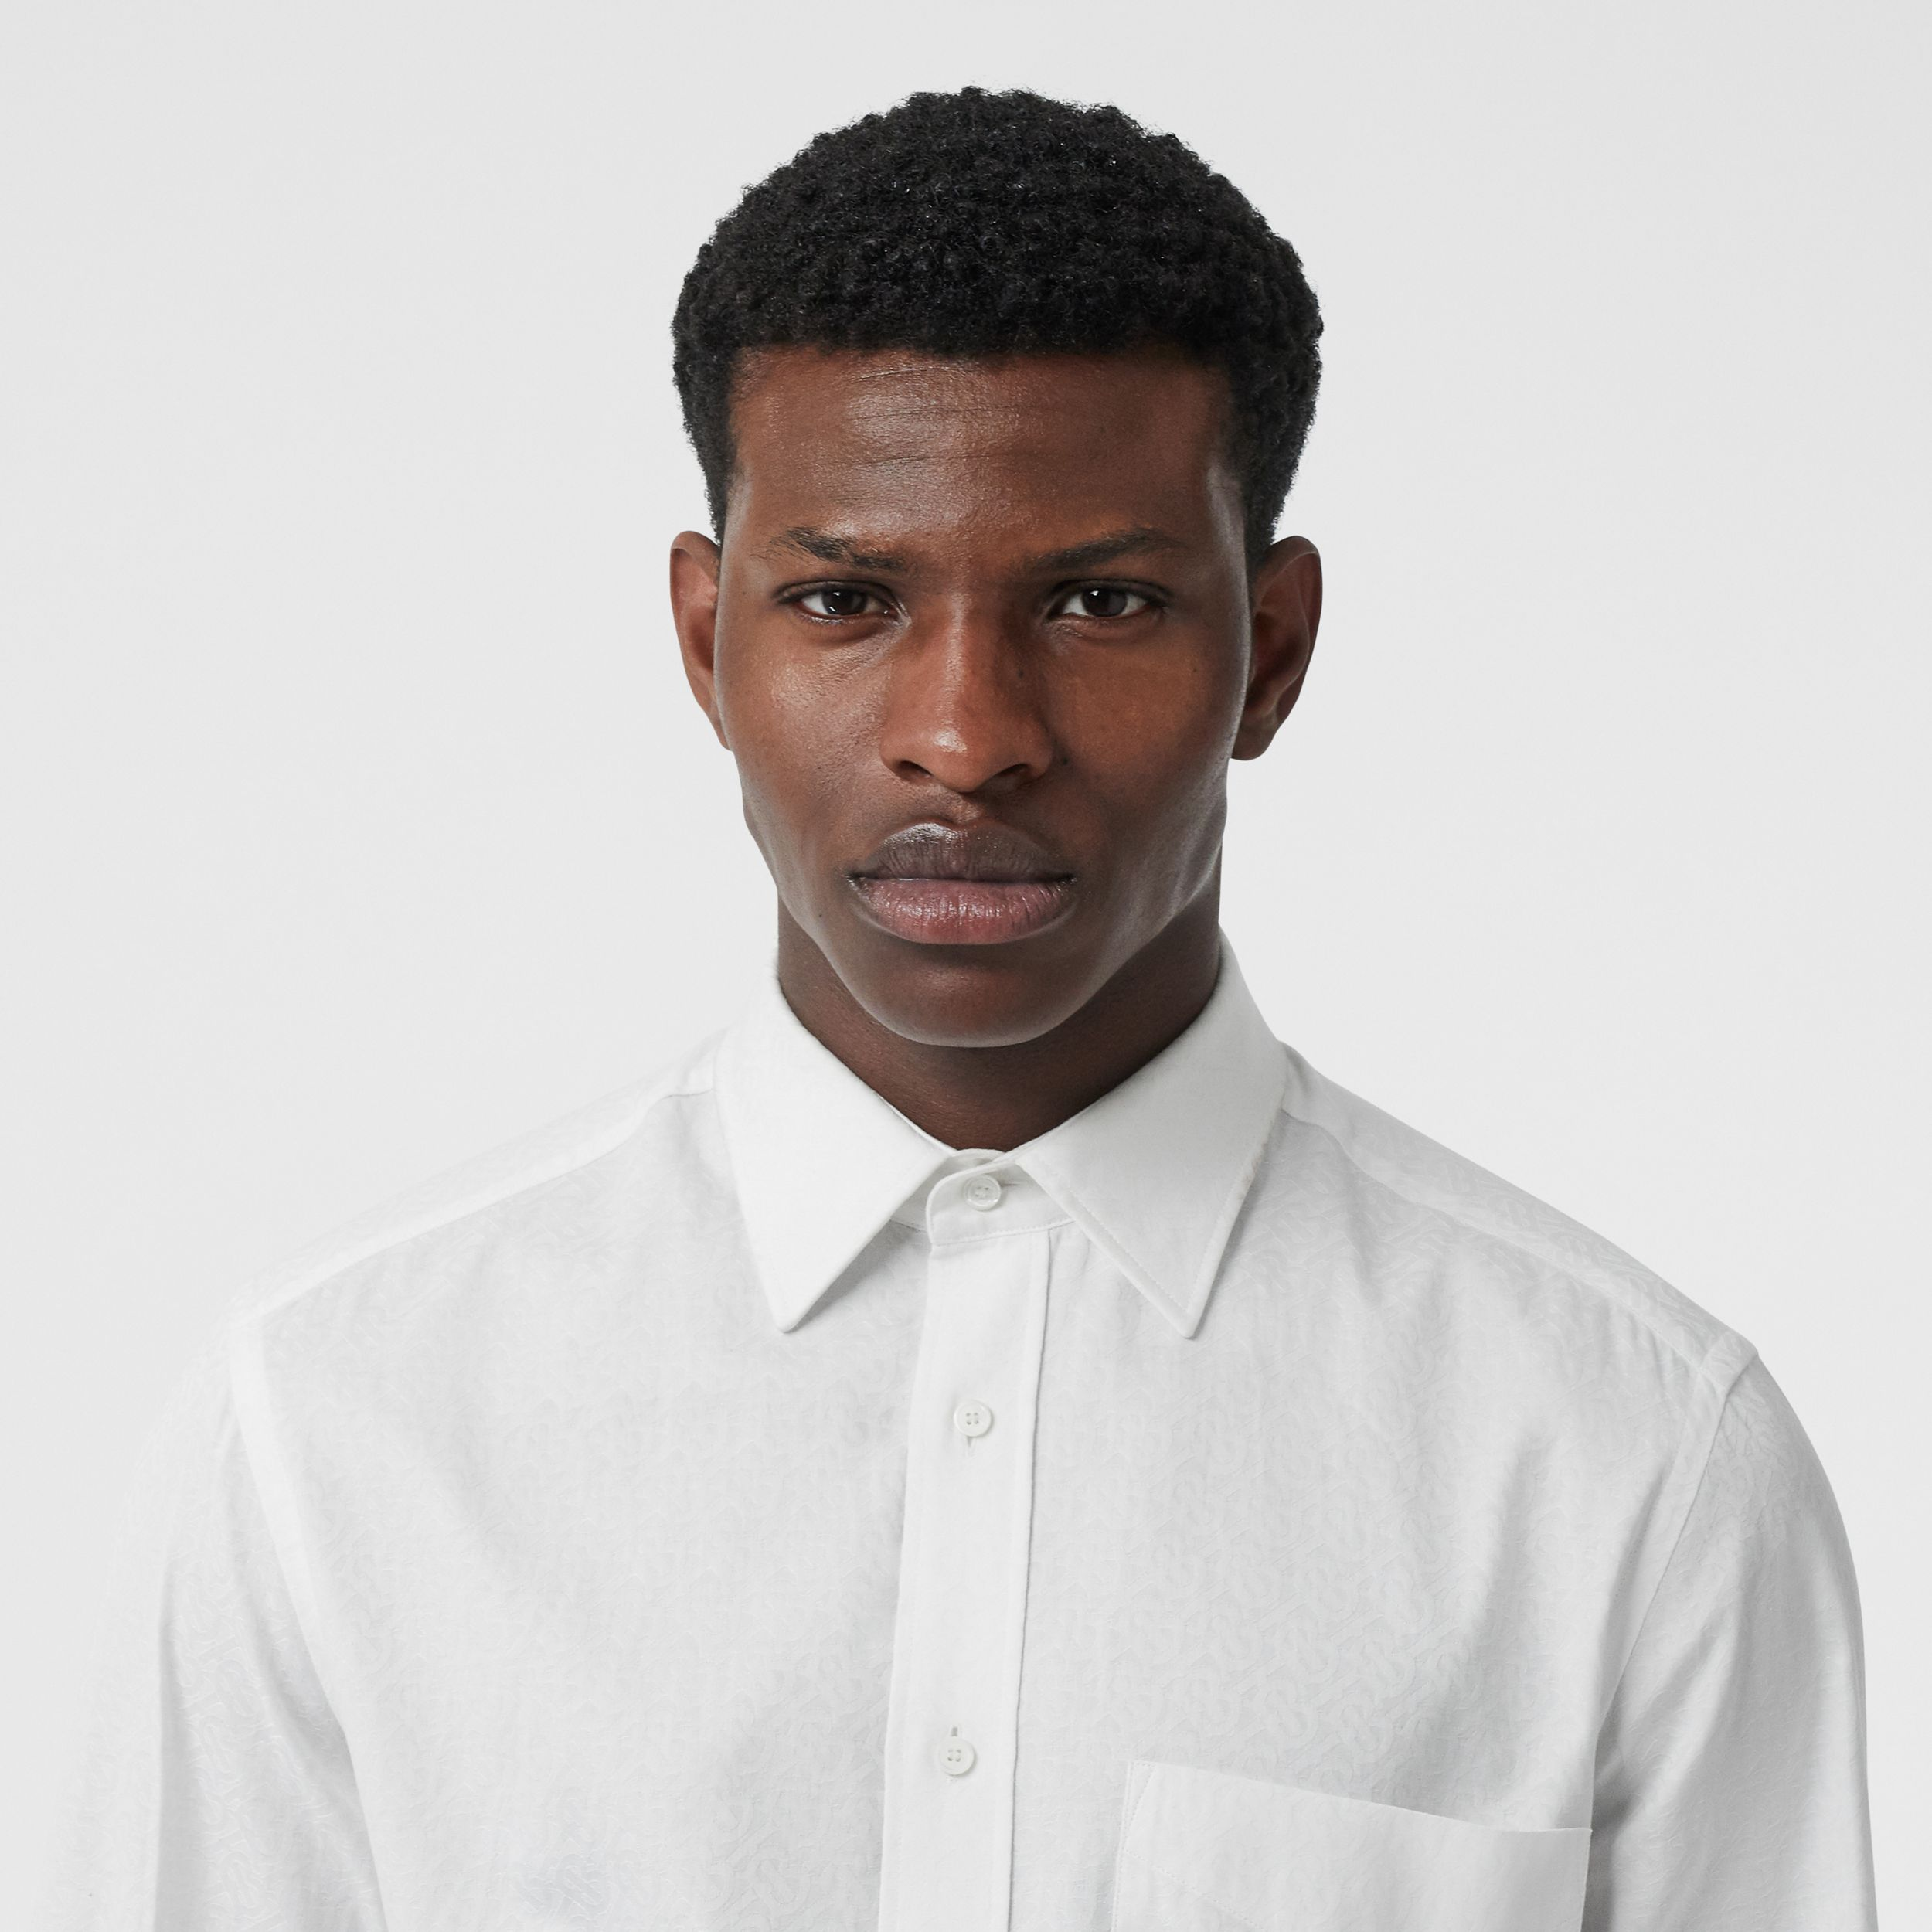 Classic Fit Monogram Cotton Jacquard Shirt in White | Burberry - 2